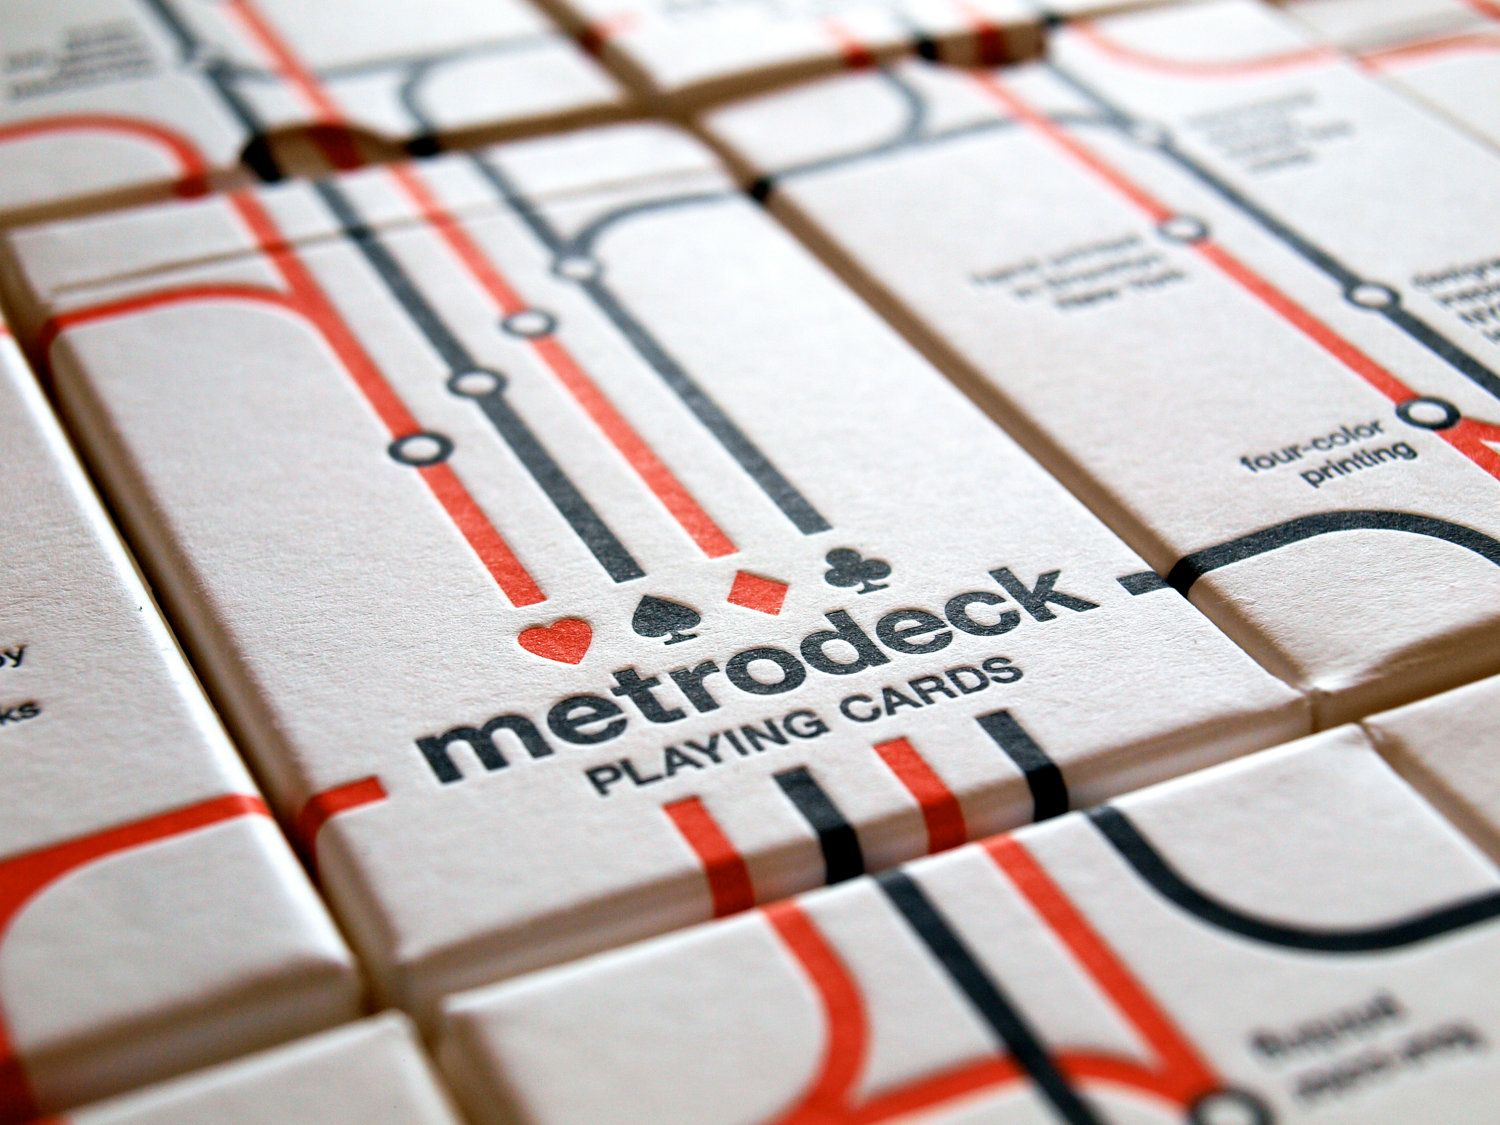 Metrodeck playing cards deck of cards cards playing cards